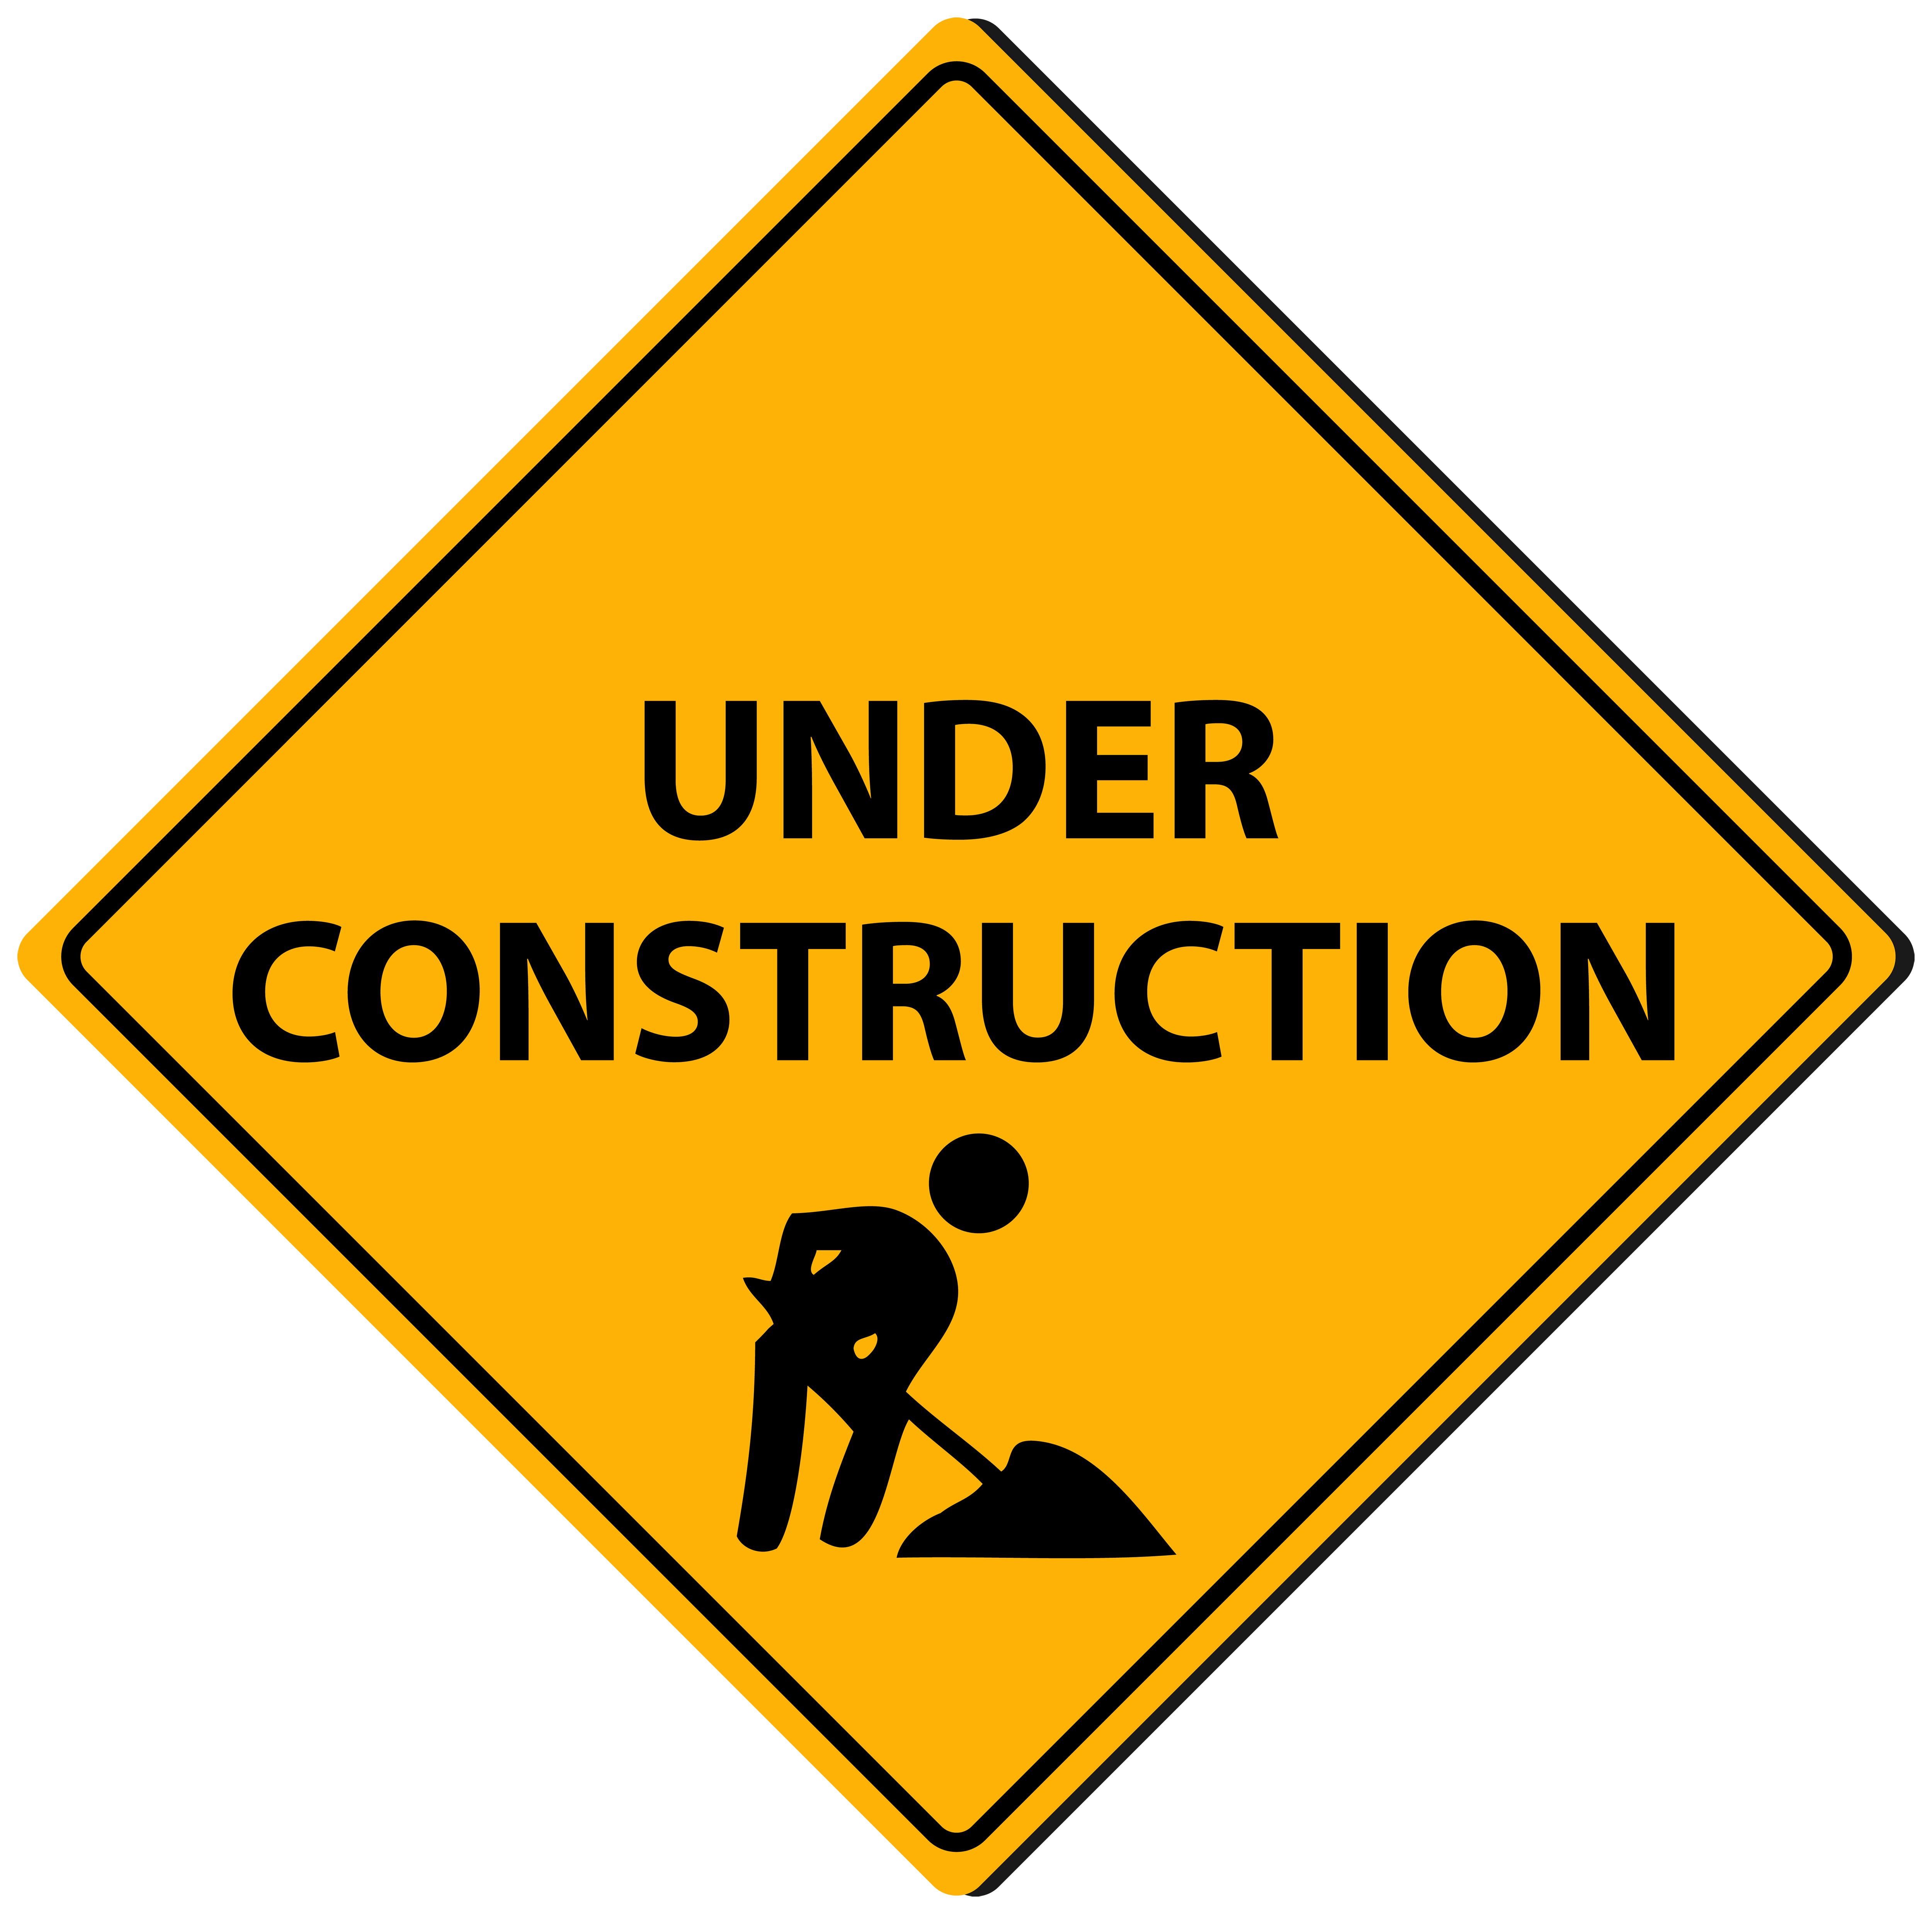 School zone sign clipart graphic library download Construction Signs Clipart at GetDrawings.com | Free for personal ... graphic library download